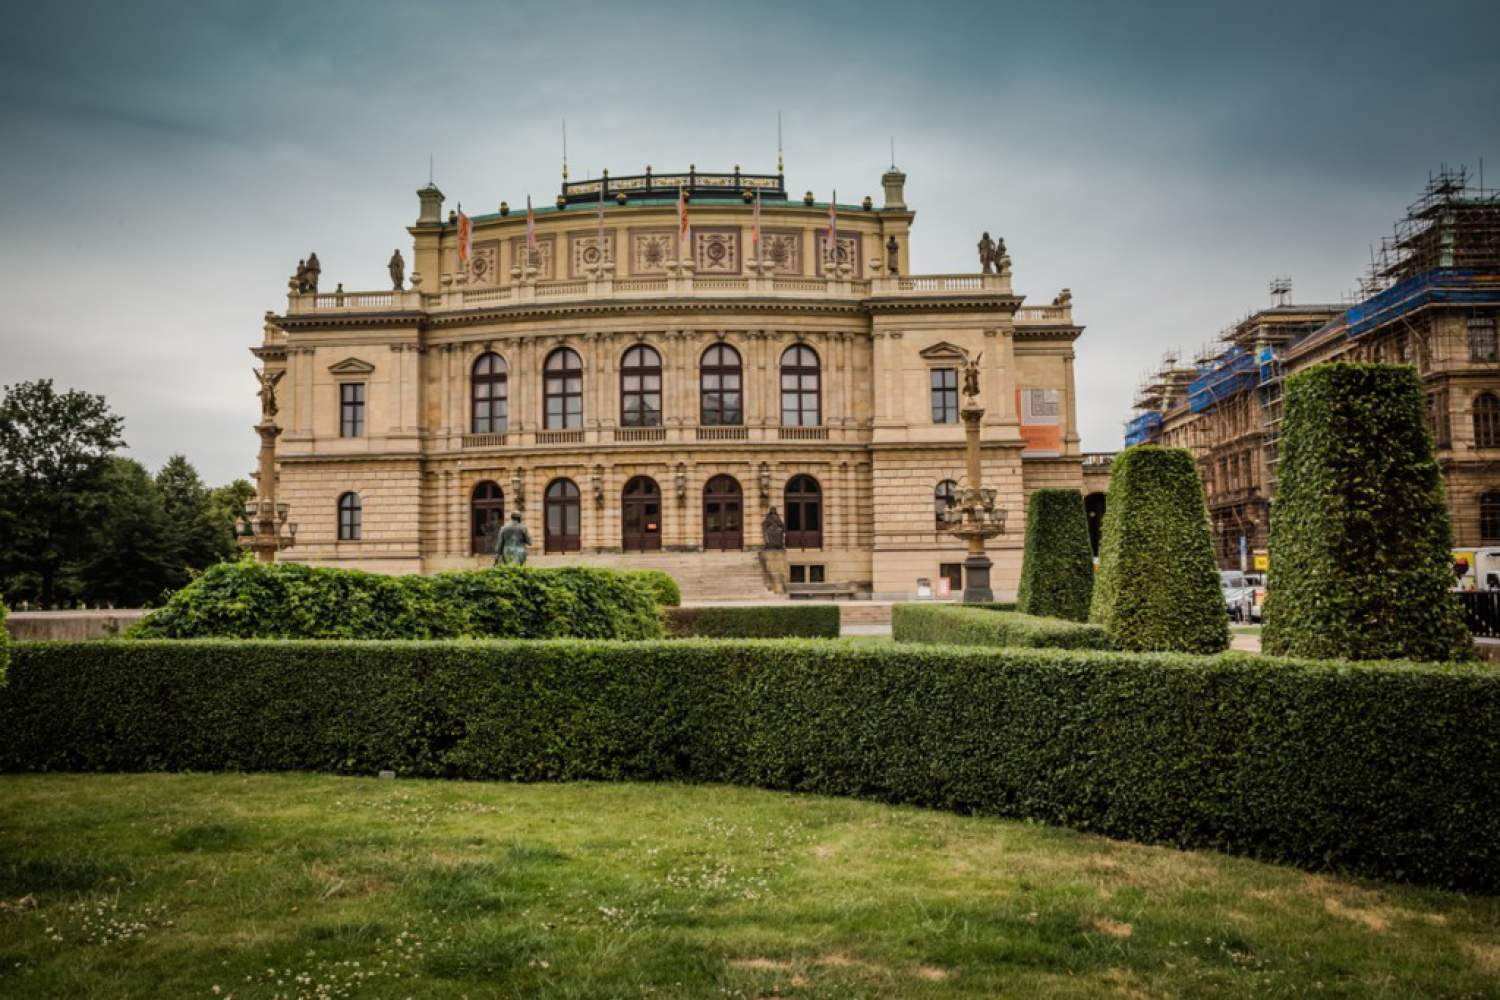 Pass in front of the Rudolfinum building on your tramway tour of Prague